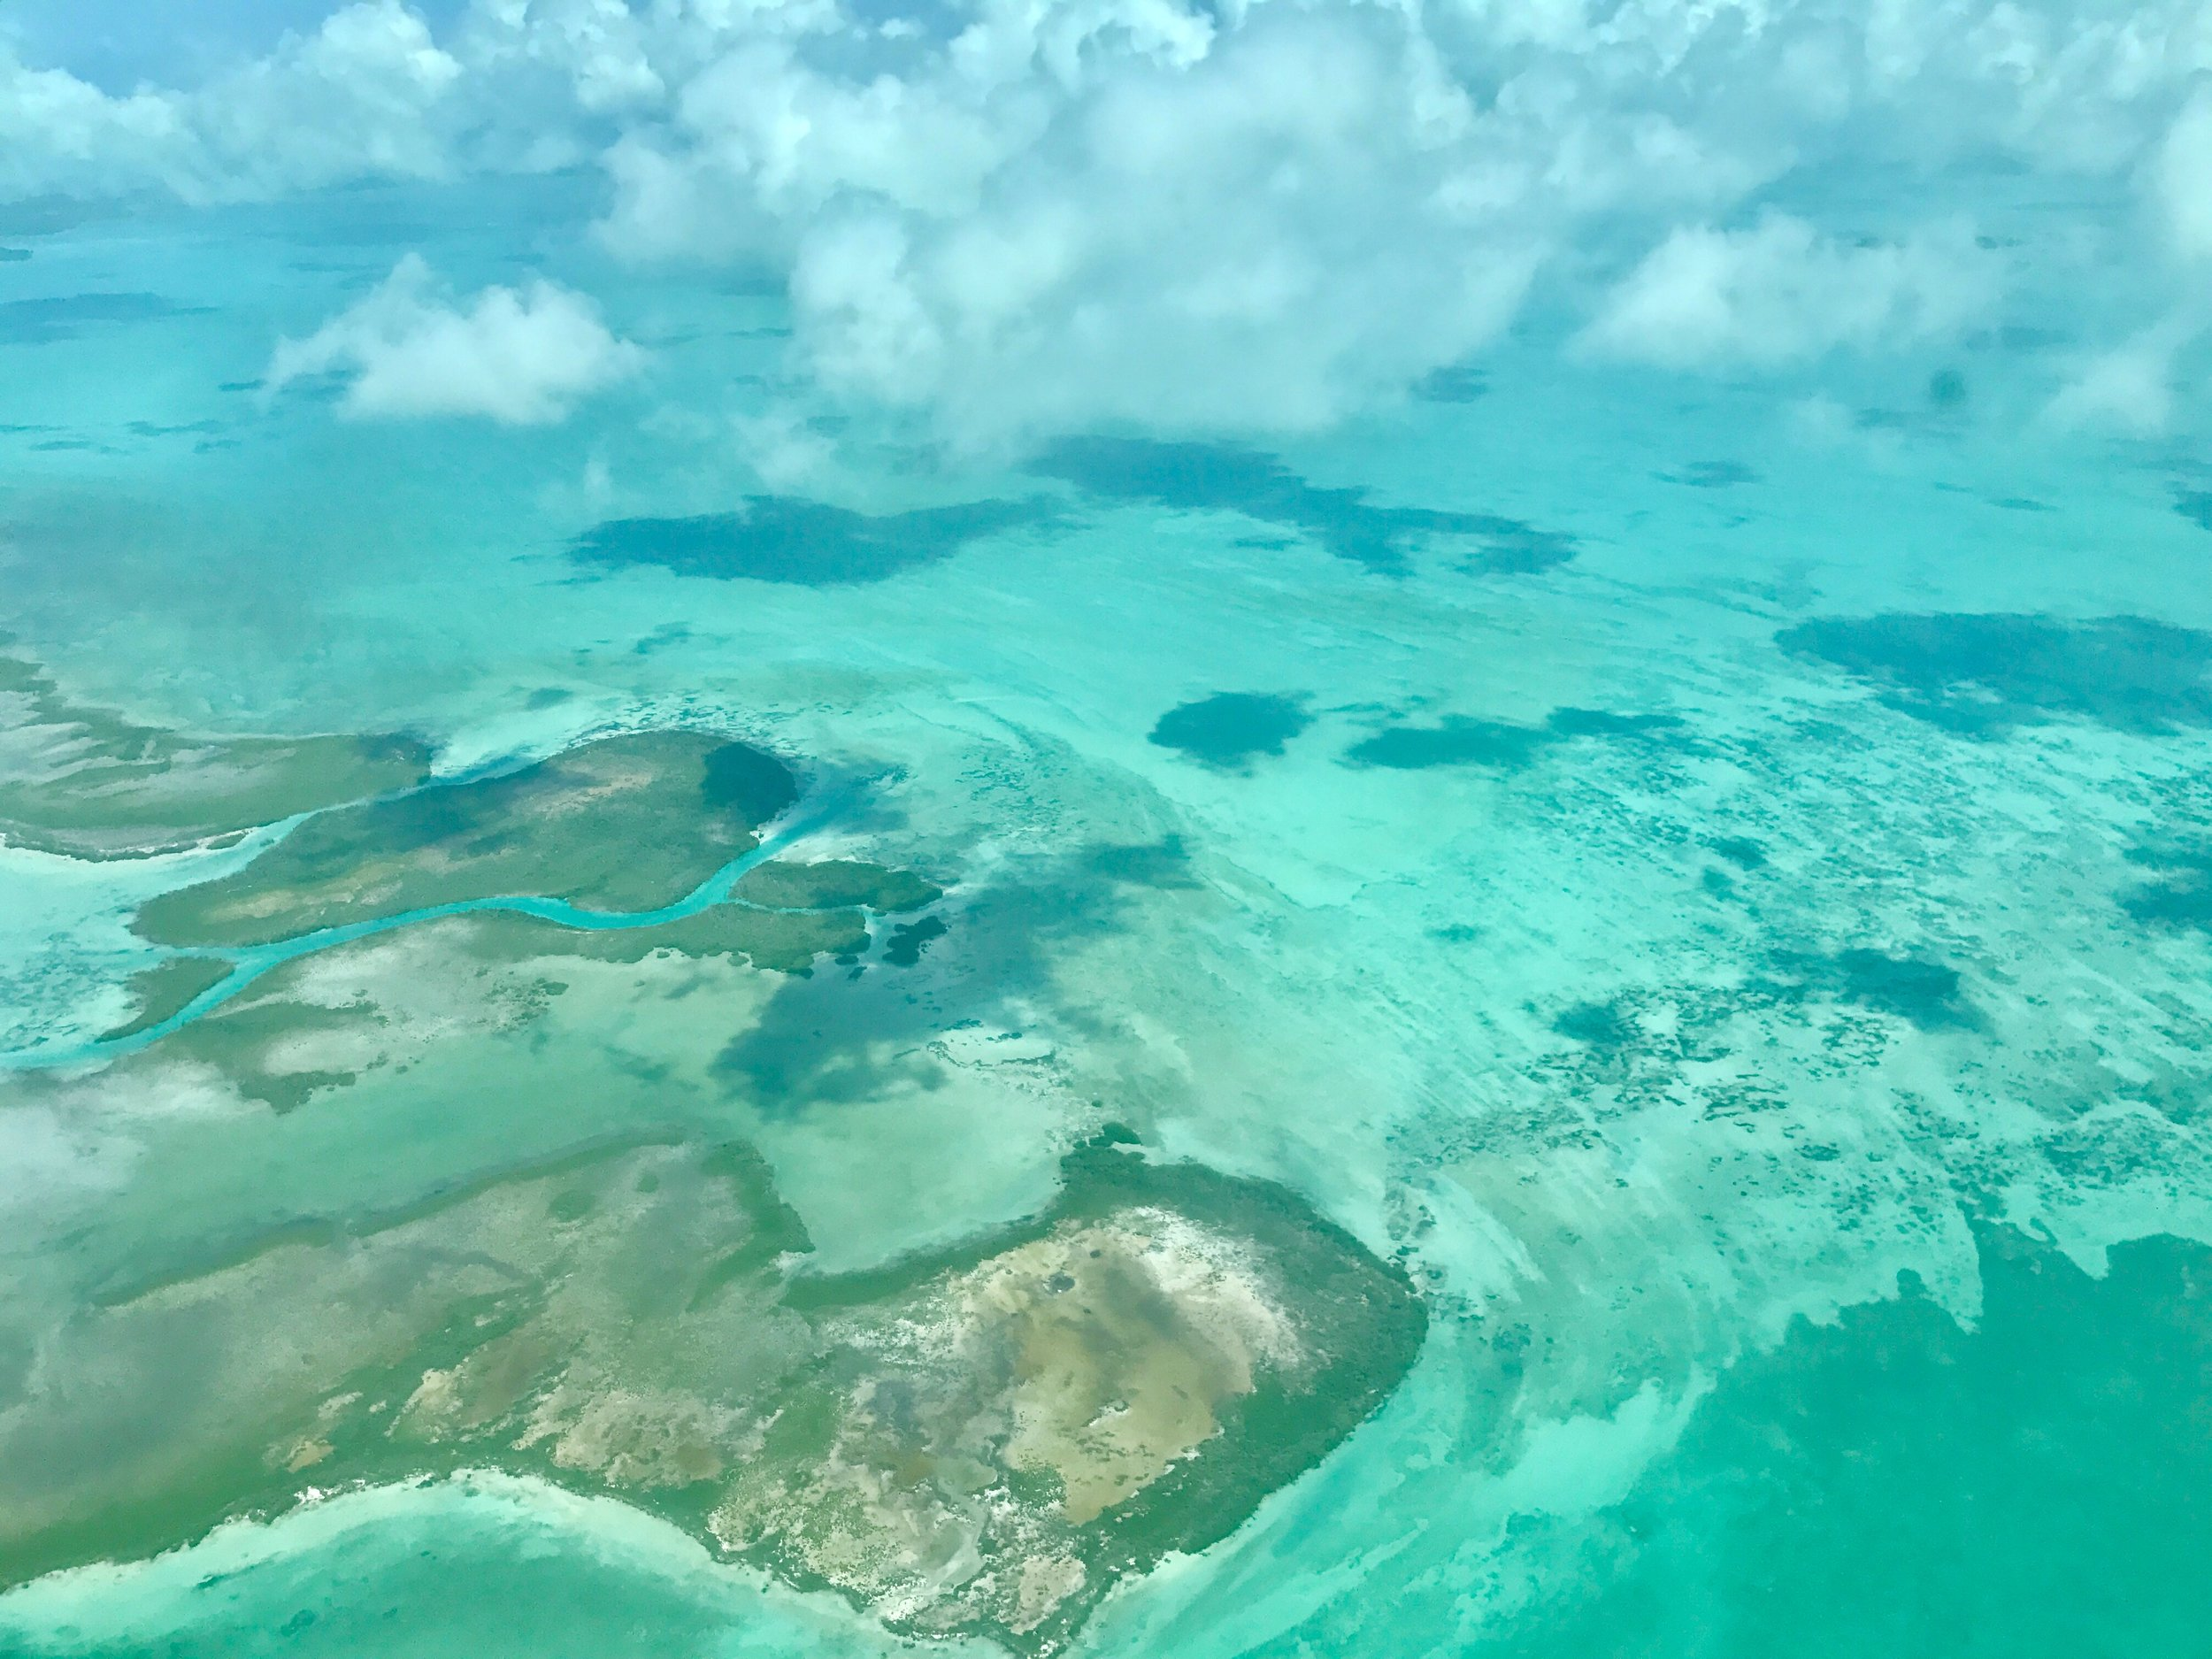 View from the plane as we crossed from Belize City to Ambergris Caye